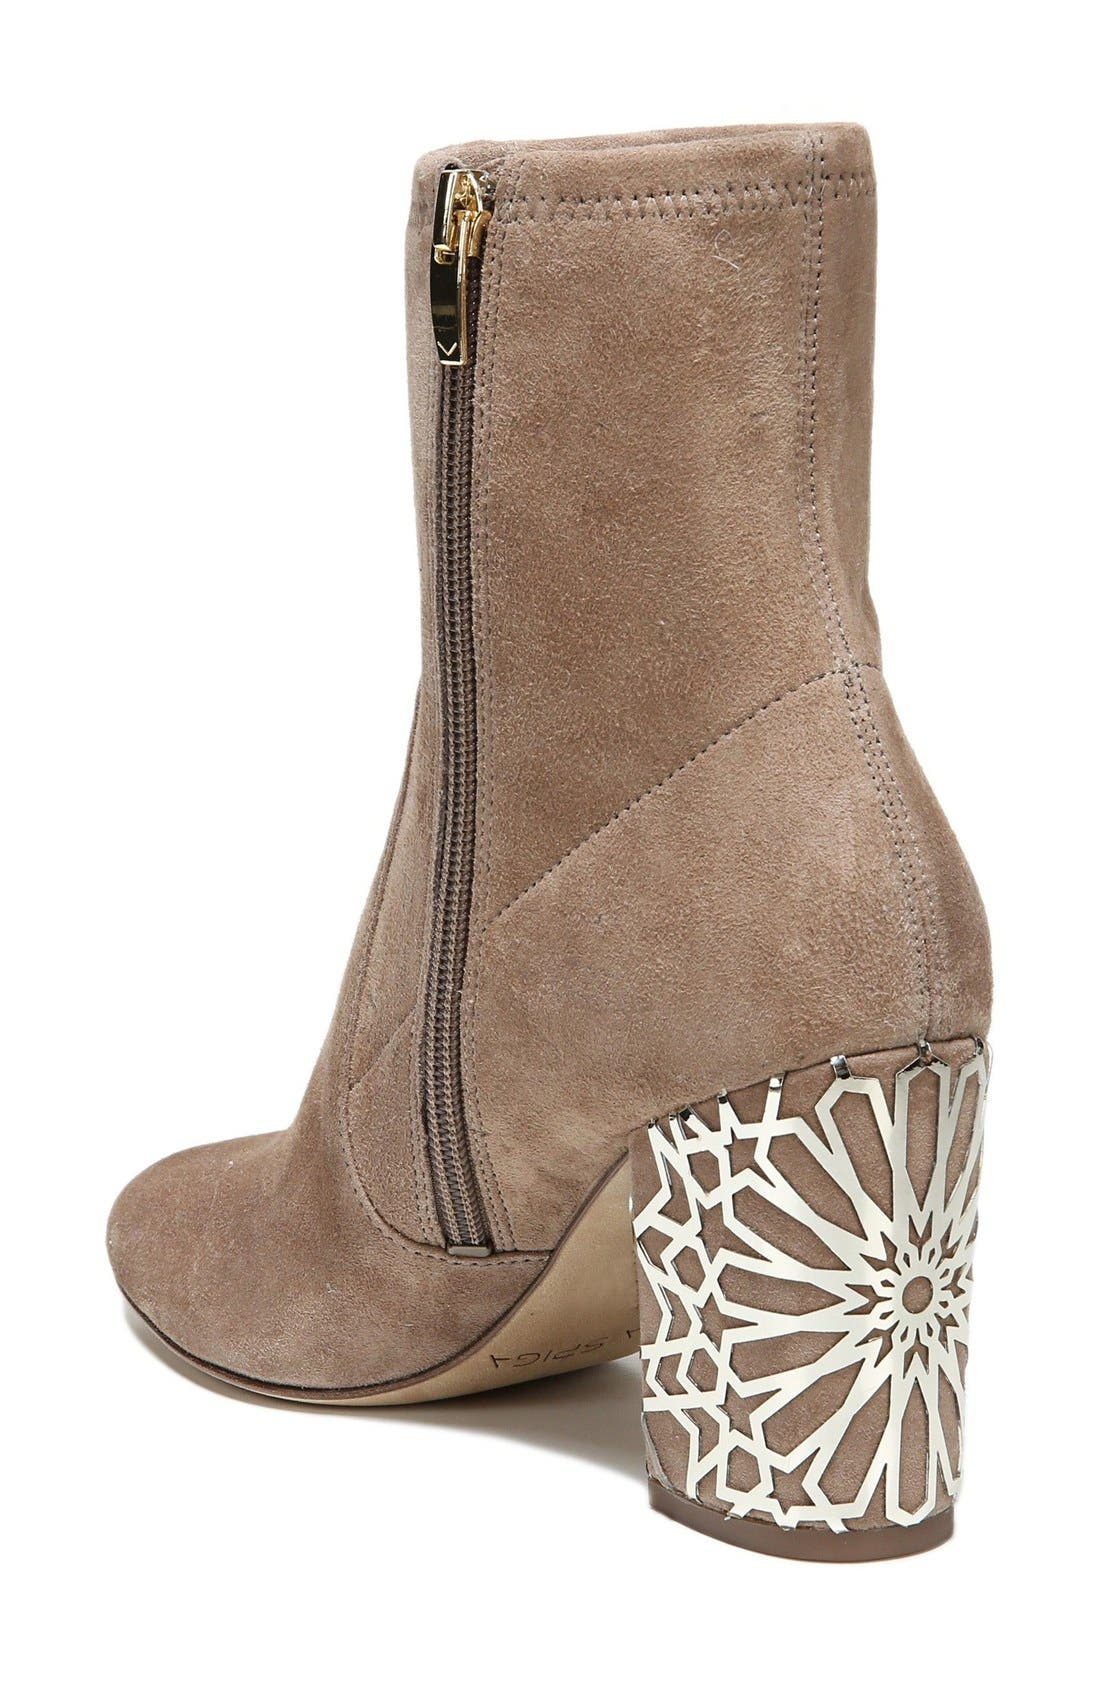 Alternate Image 2  - Via Spiga 'Daisie' Caged Heel Bootie (Women)